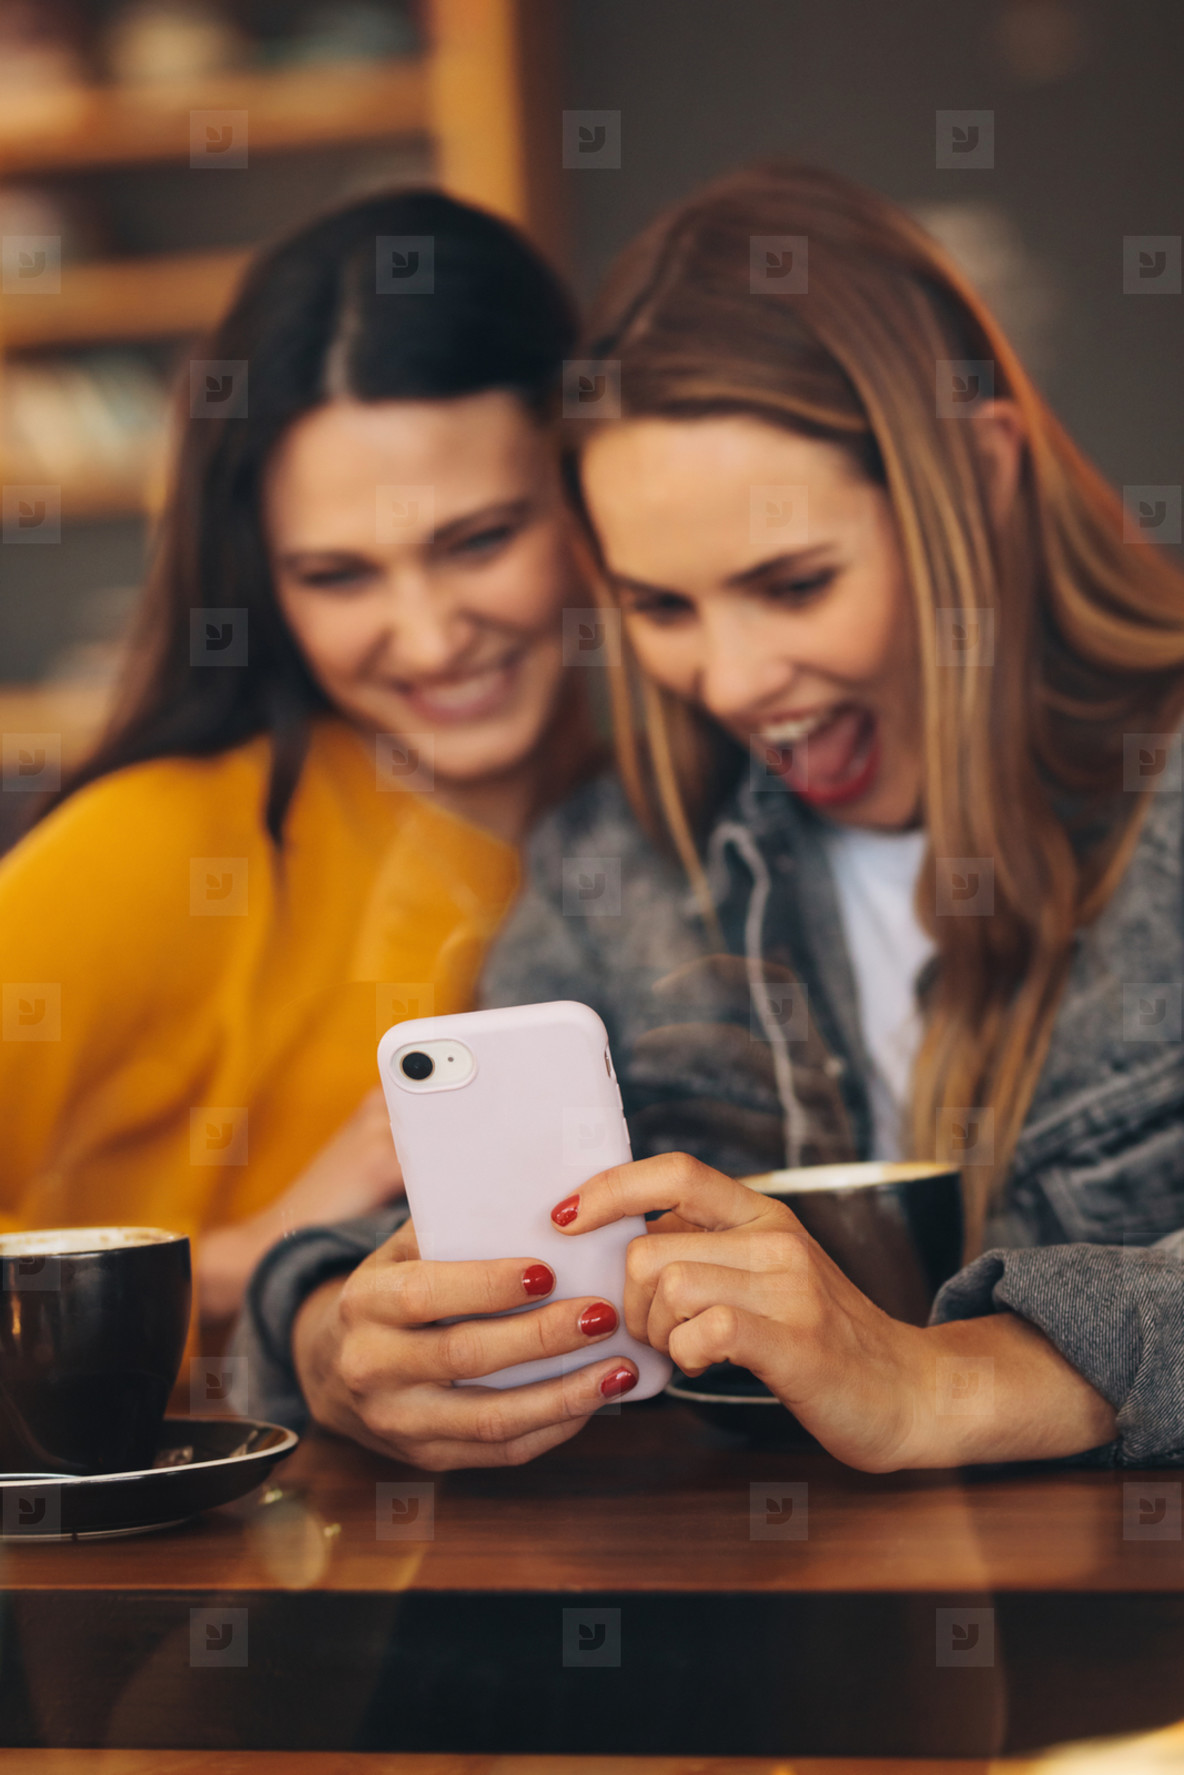 Friends looking funny updates on mobile phone